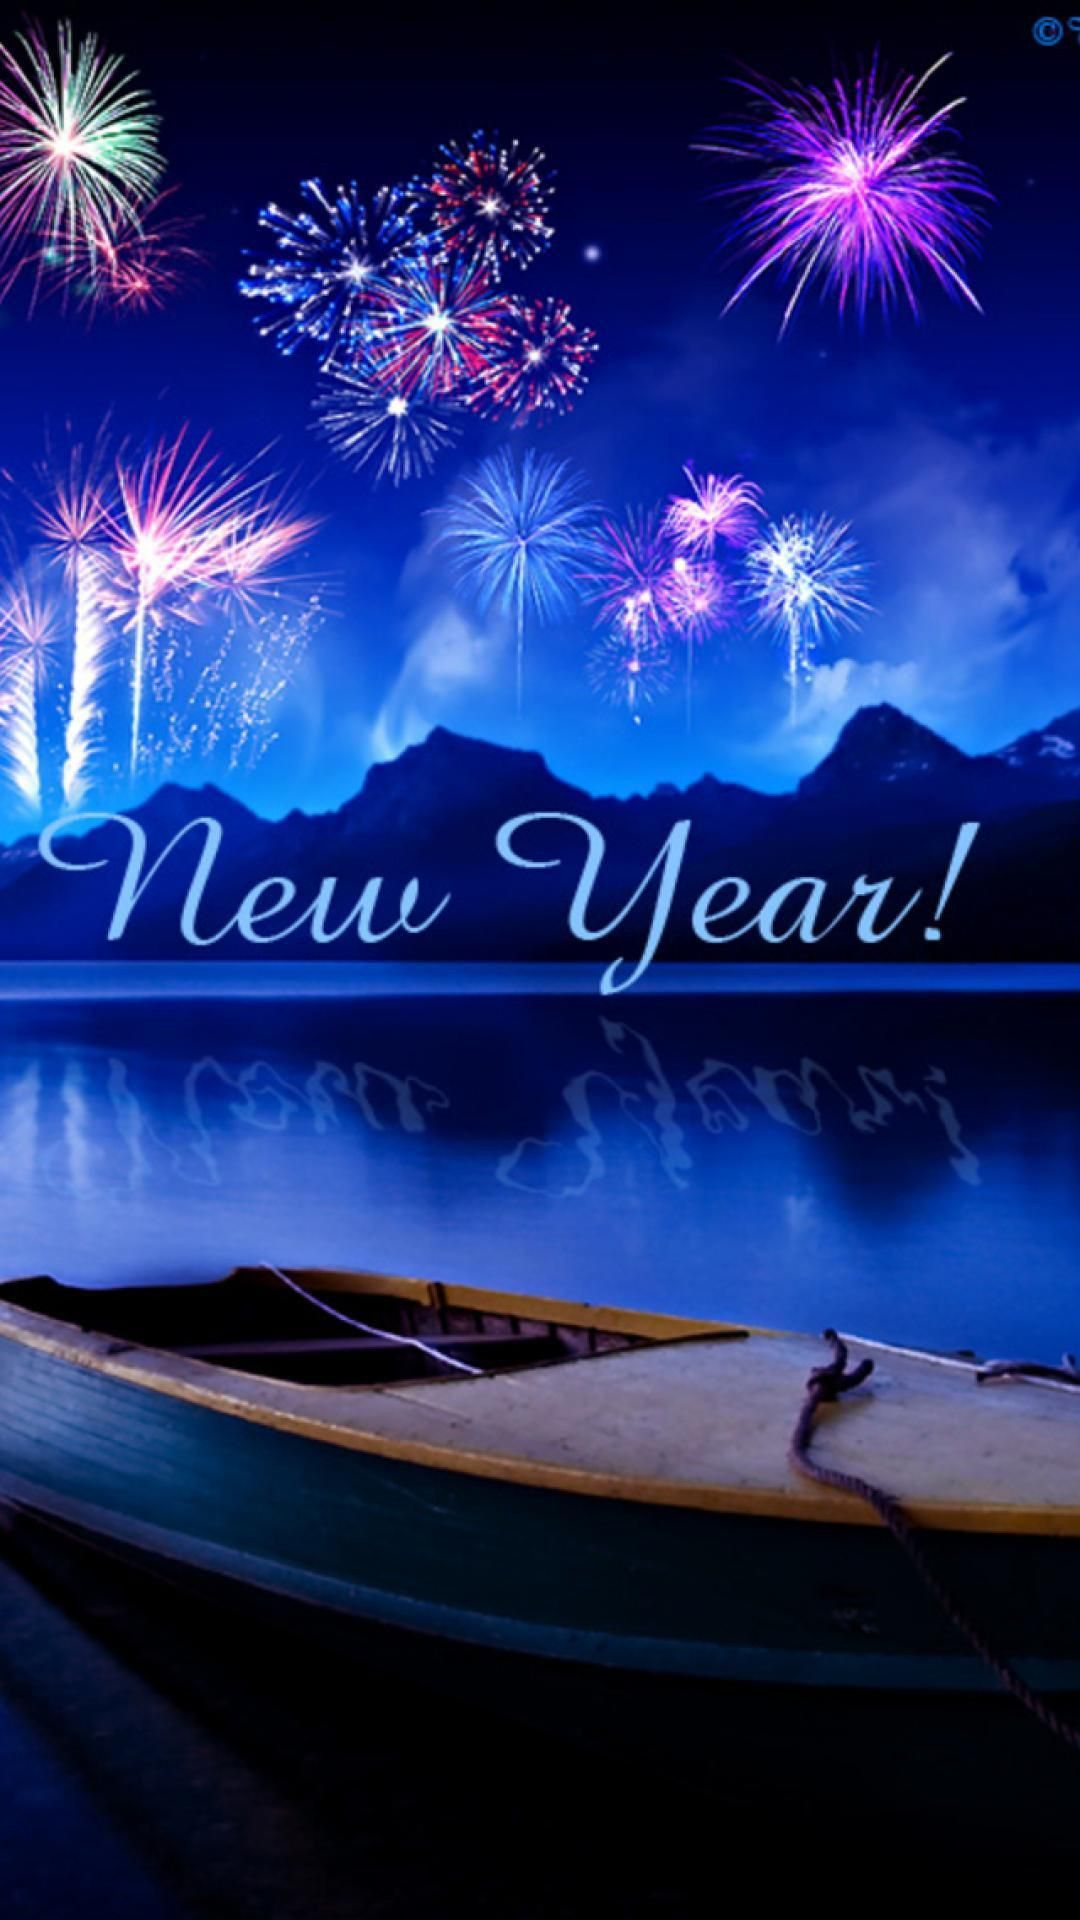 Happy new year 2020 photo Download Information (With